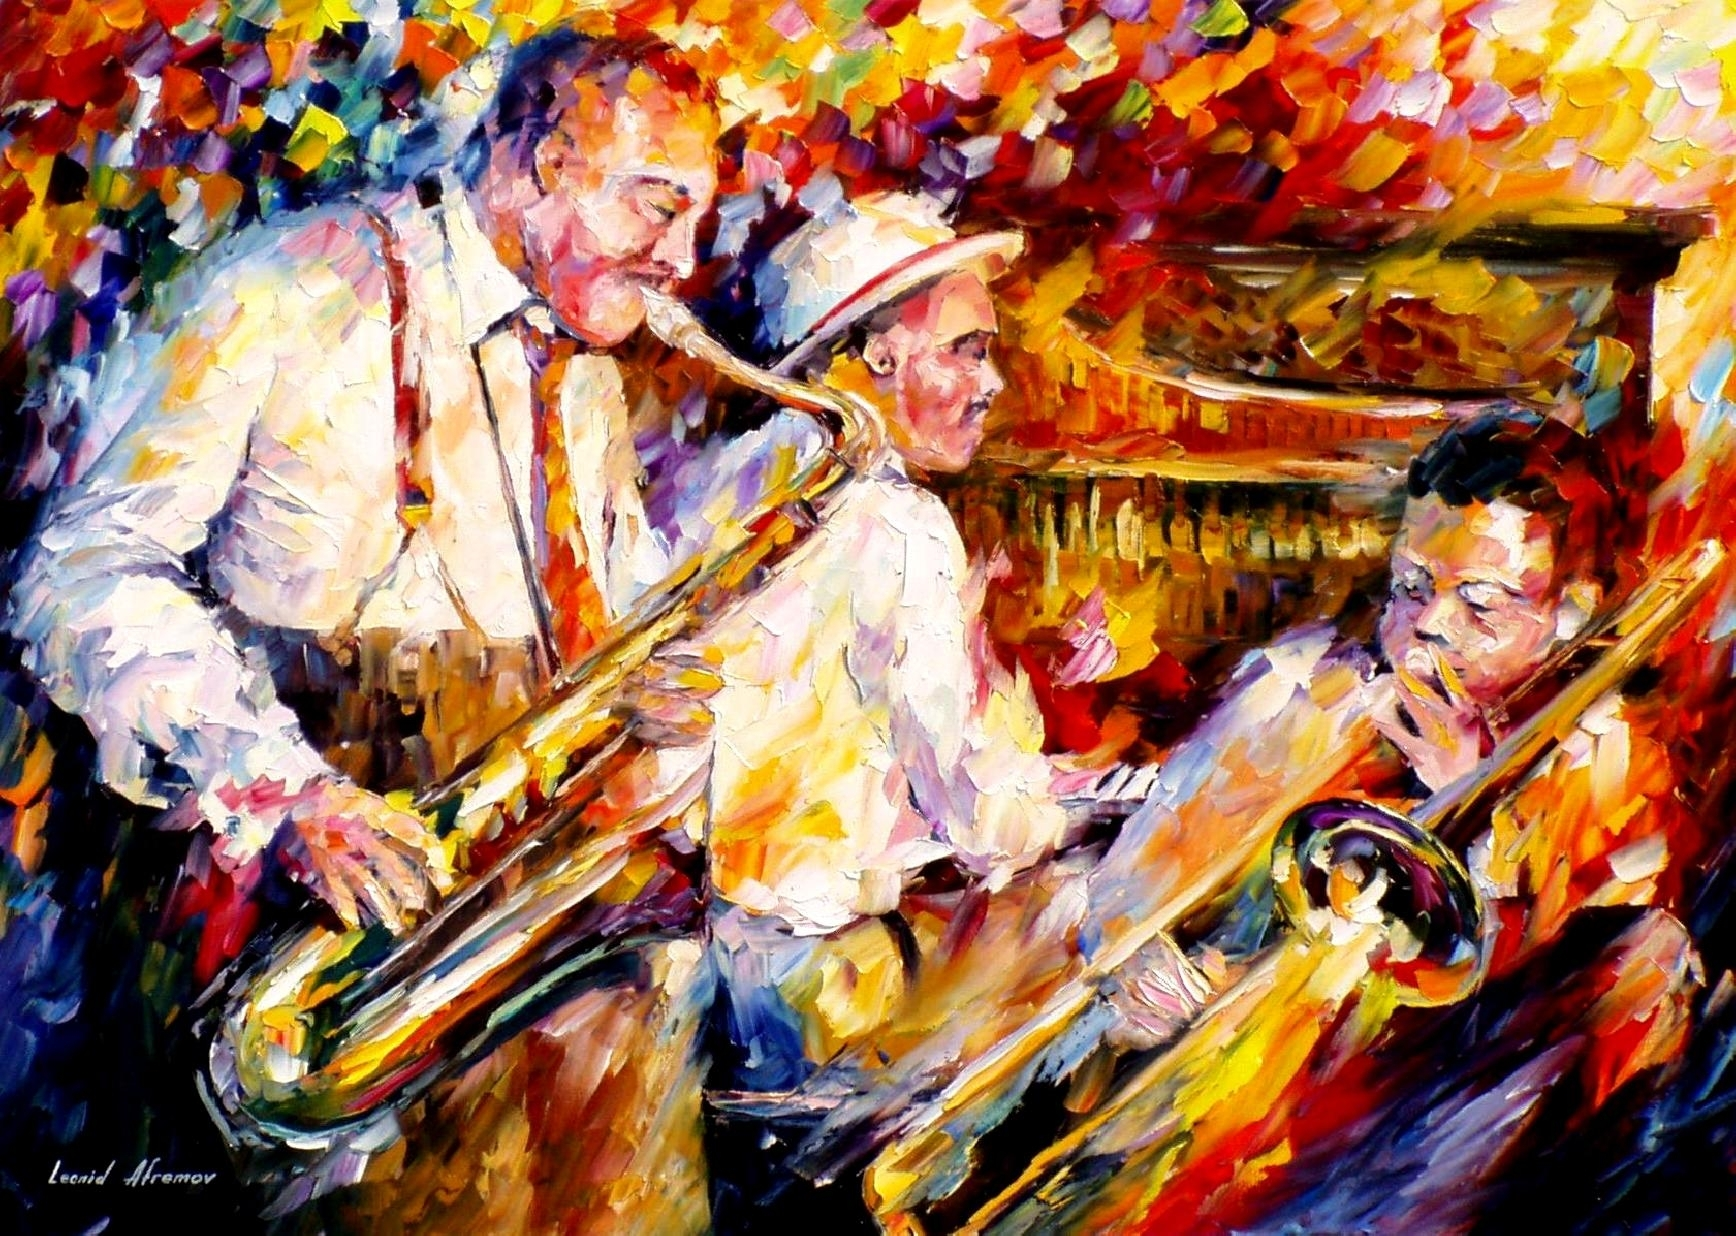 Leonid Afremov, Oil On Canvas, Palette Knife, Buy Original In Most Popular Jazz Canvas Wall Art (View 12 of 15)